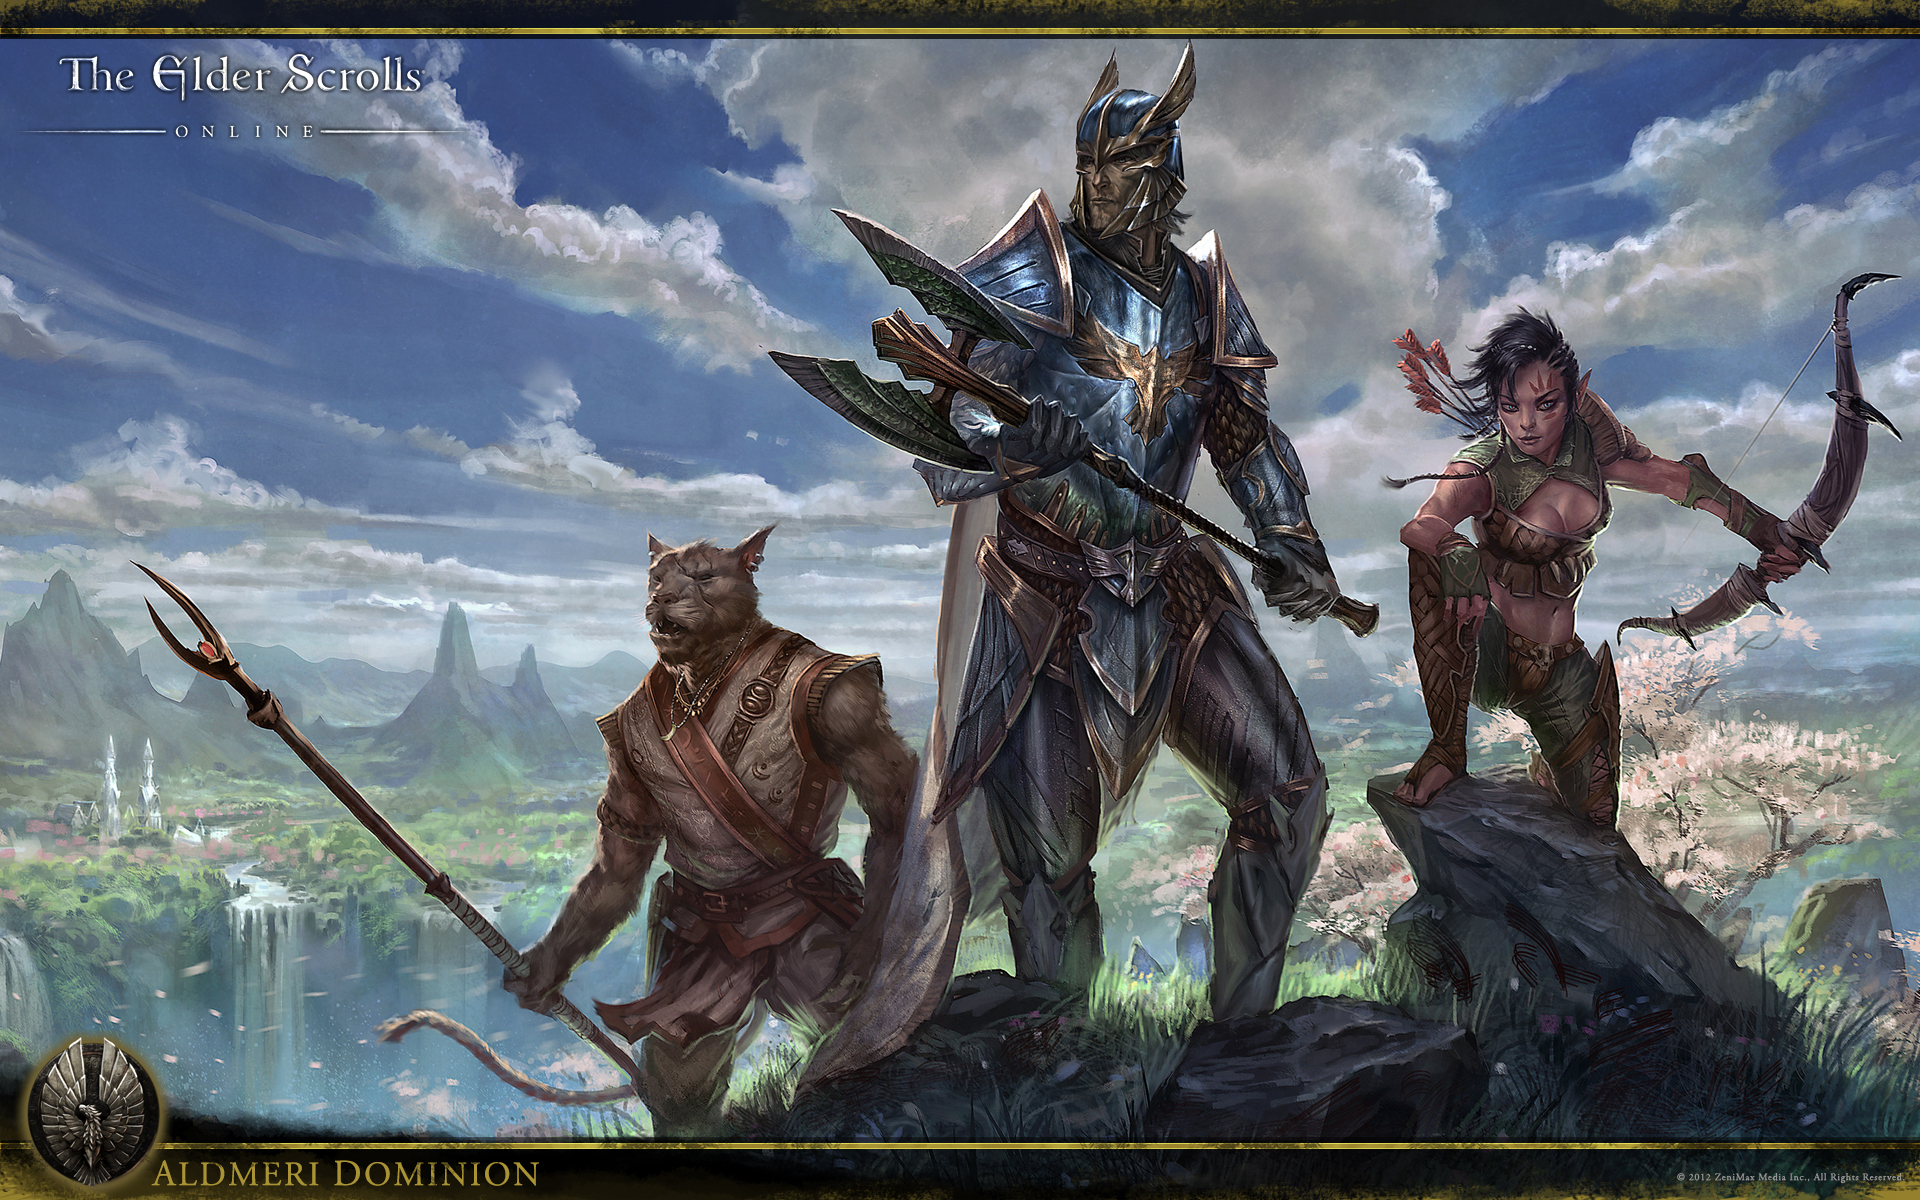 Wallpaper The Elder Scrolls Online: Aldmeri Dominion